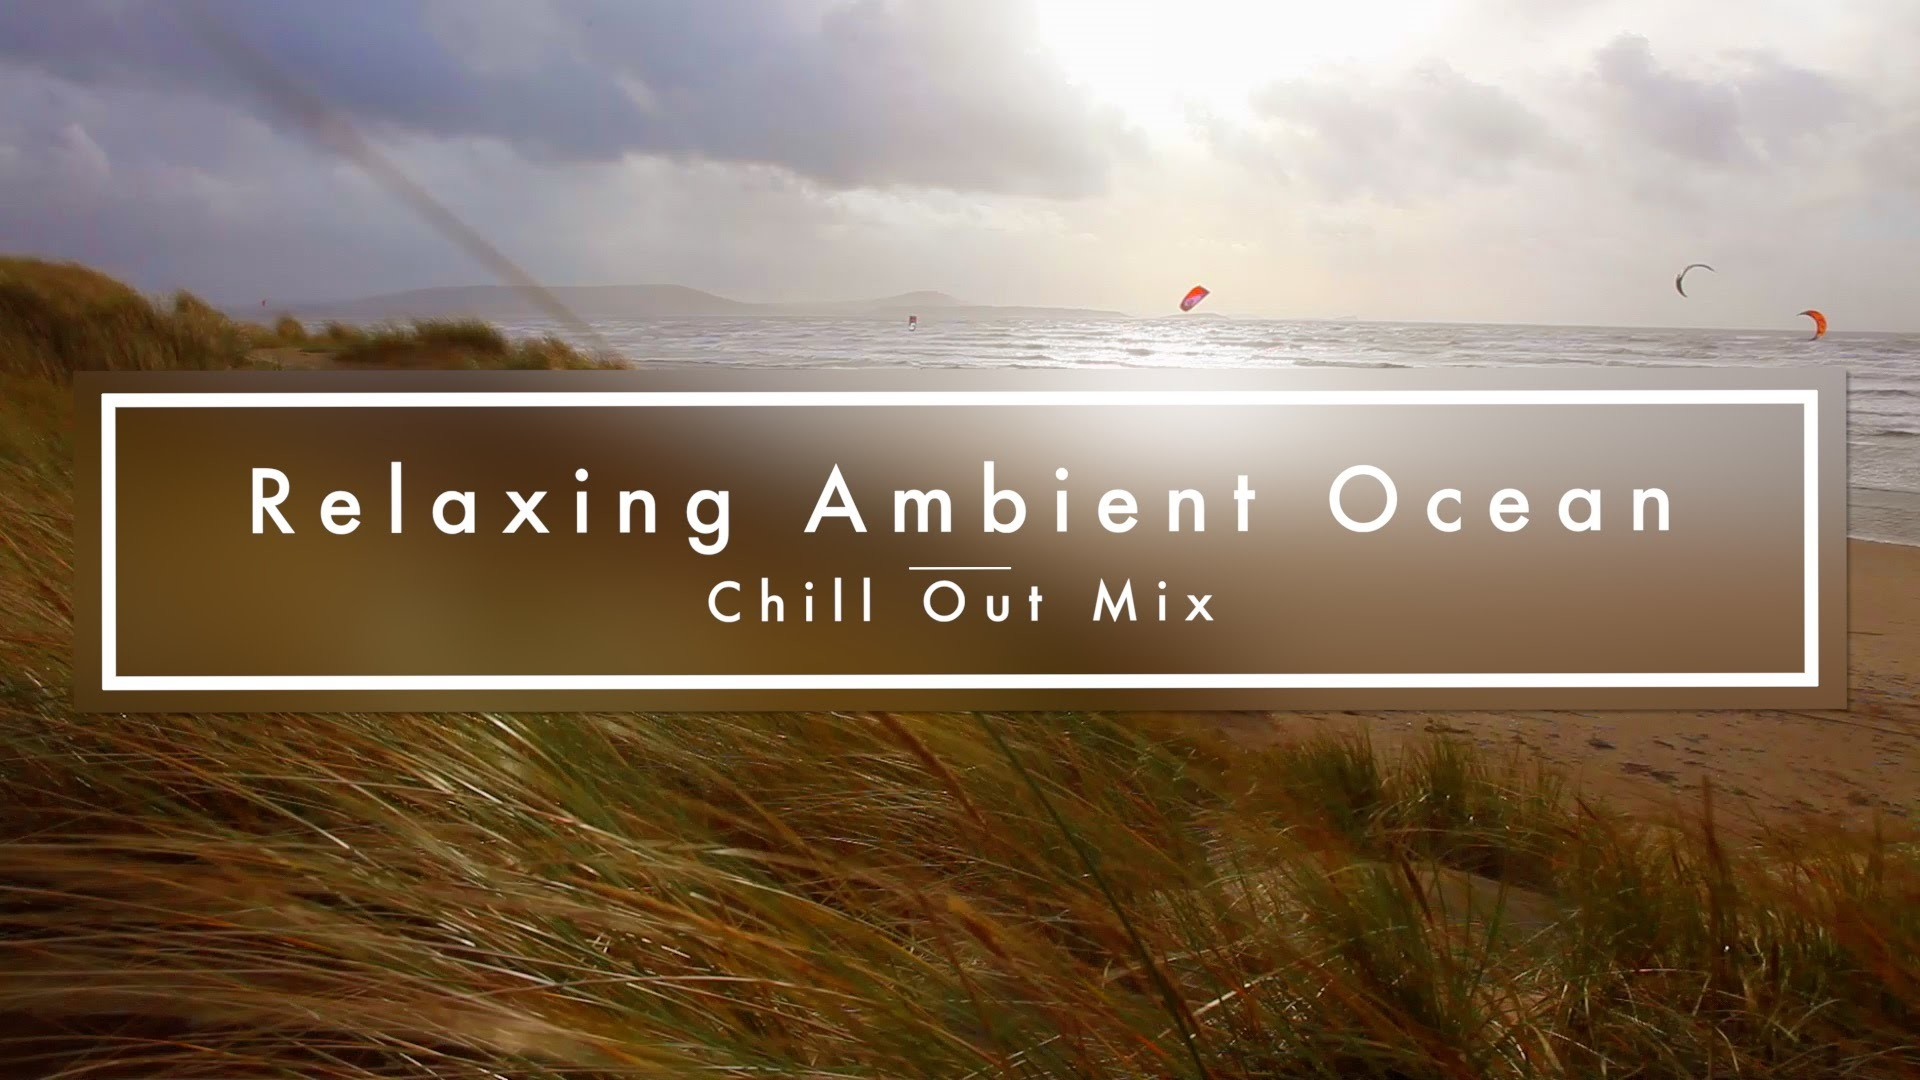 1920x1080 Ambient Ocean View | Chill out Mix | Kitesurfers | Live wallpaper |  Screensaver | Study | Yoga Music